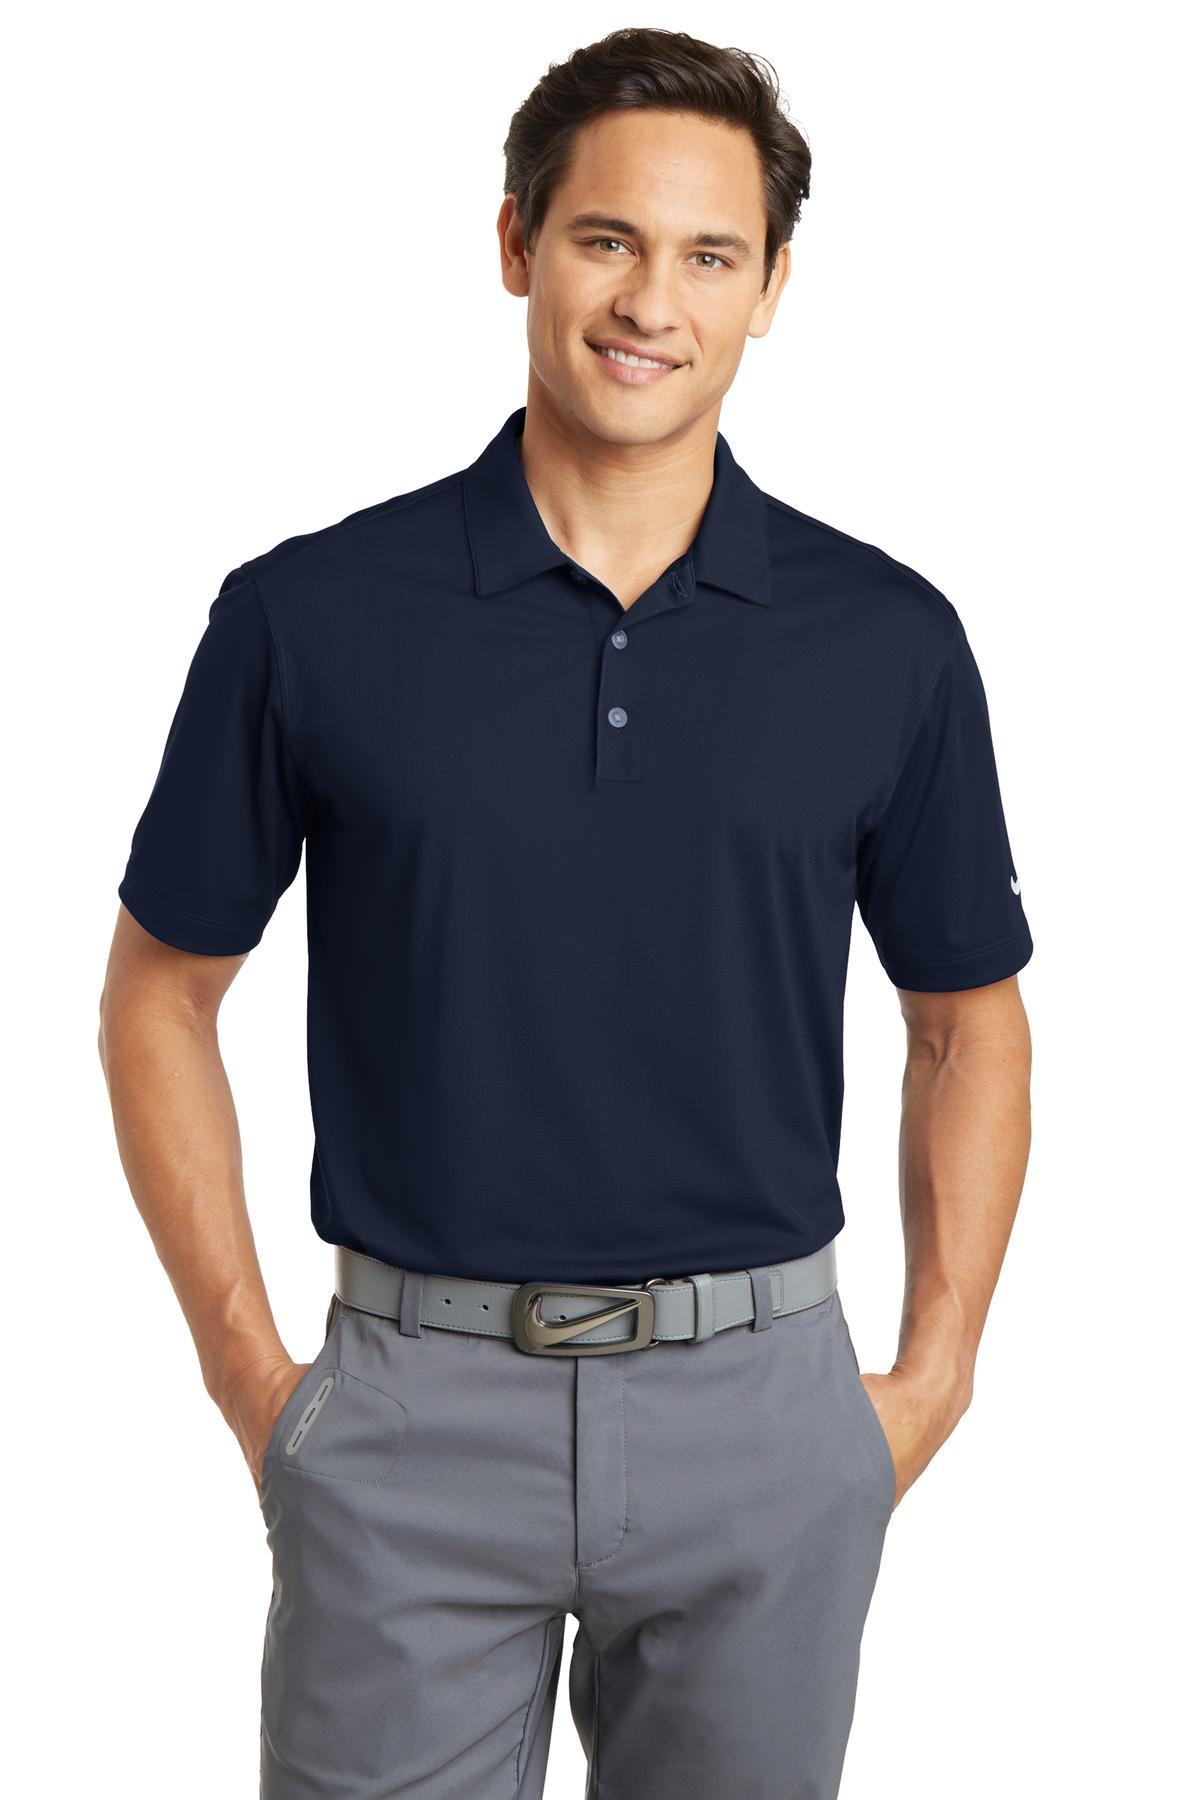 Nike Dri-FIT Vertical Mesh Polo. 637167 - Marine